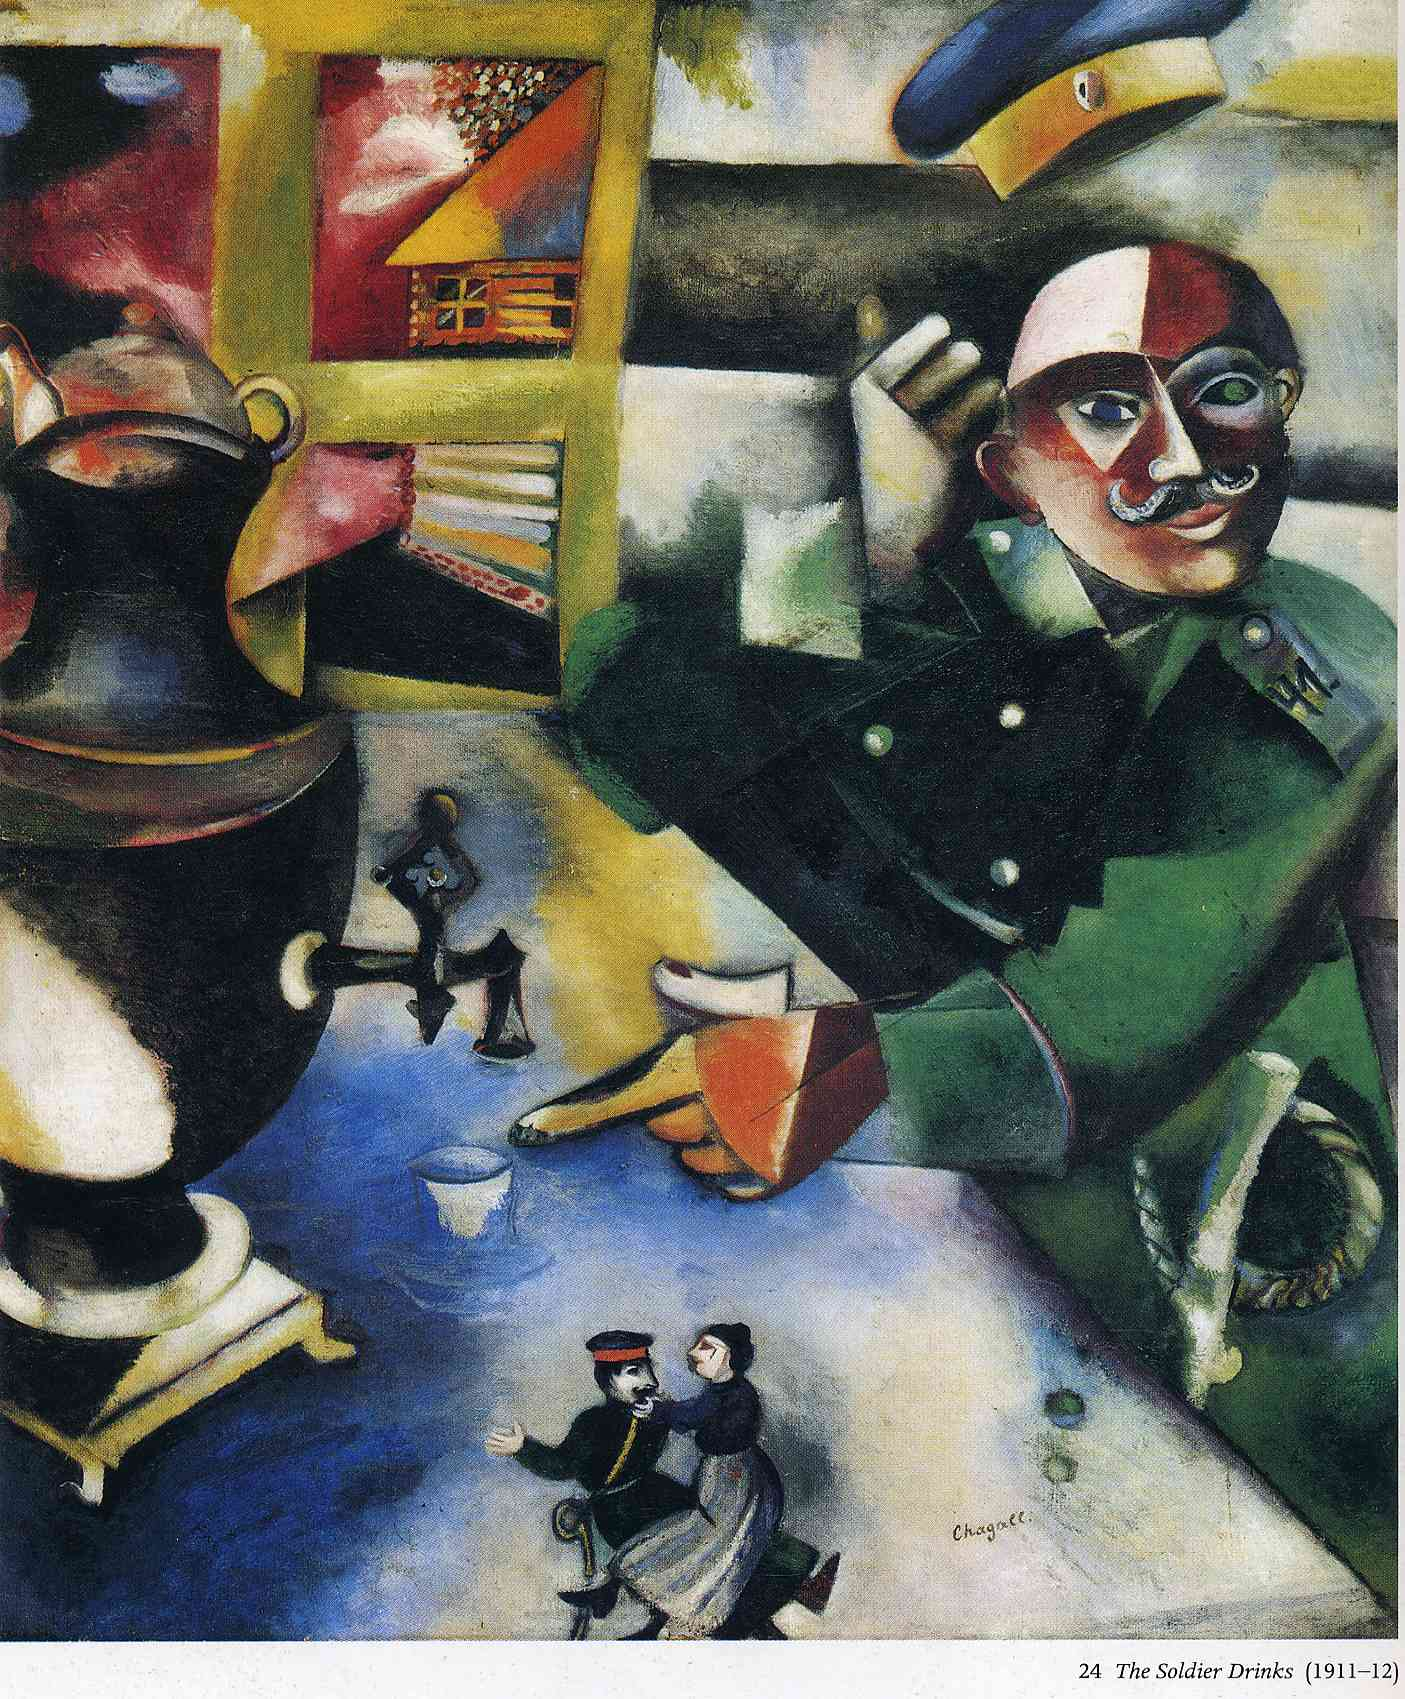 The Soldier Drinks, 1912 - Marc Chagall - WikiArt.org Chagall Afbeeldingen